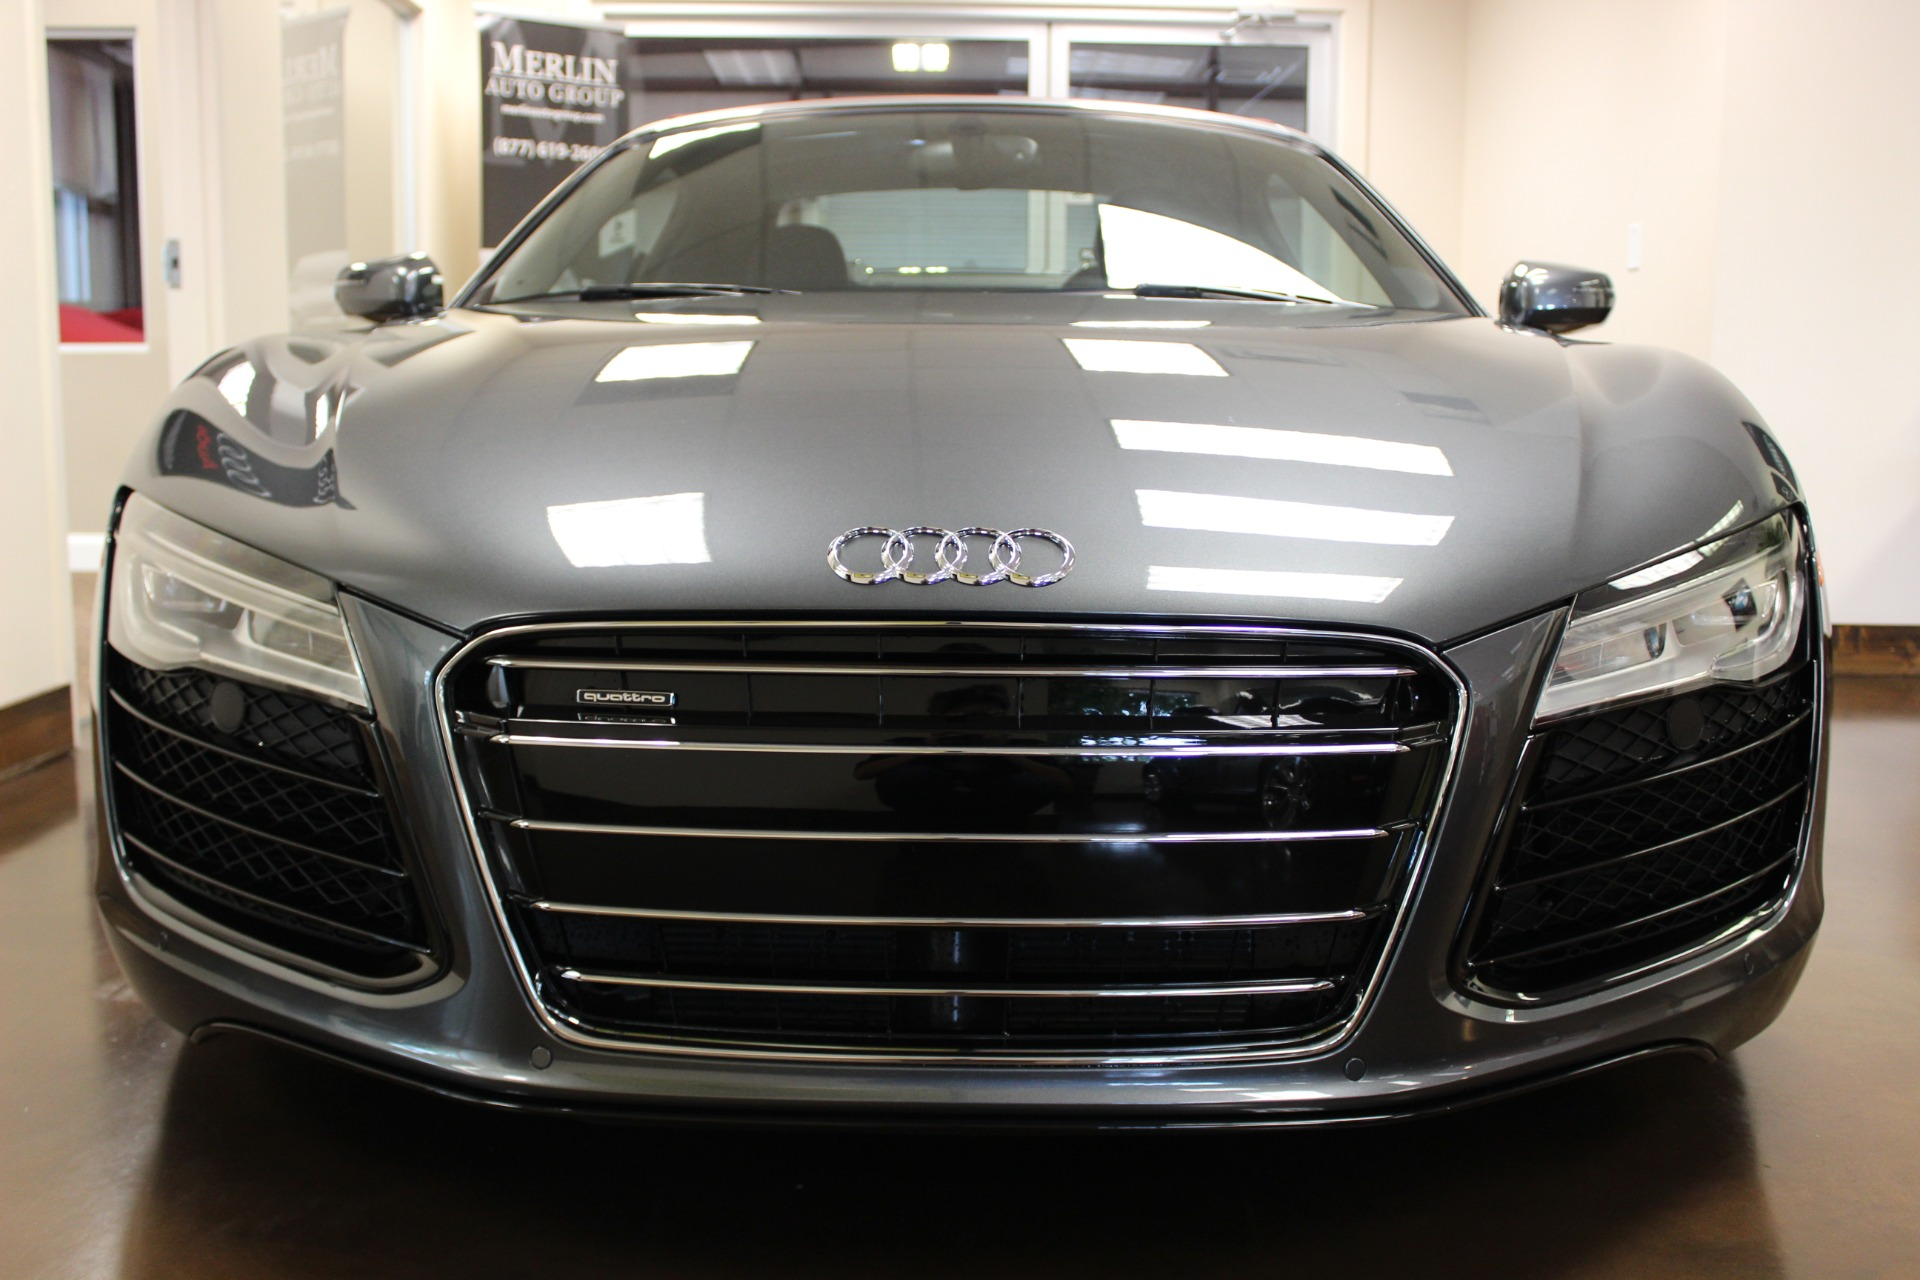 2015 audi r8 grey convertible v10 a used audi r8 for sale in atlanta georgia used car. Black Bedroom Furniture Sets. Home Design Ideas